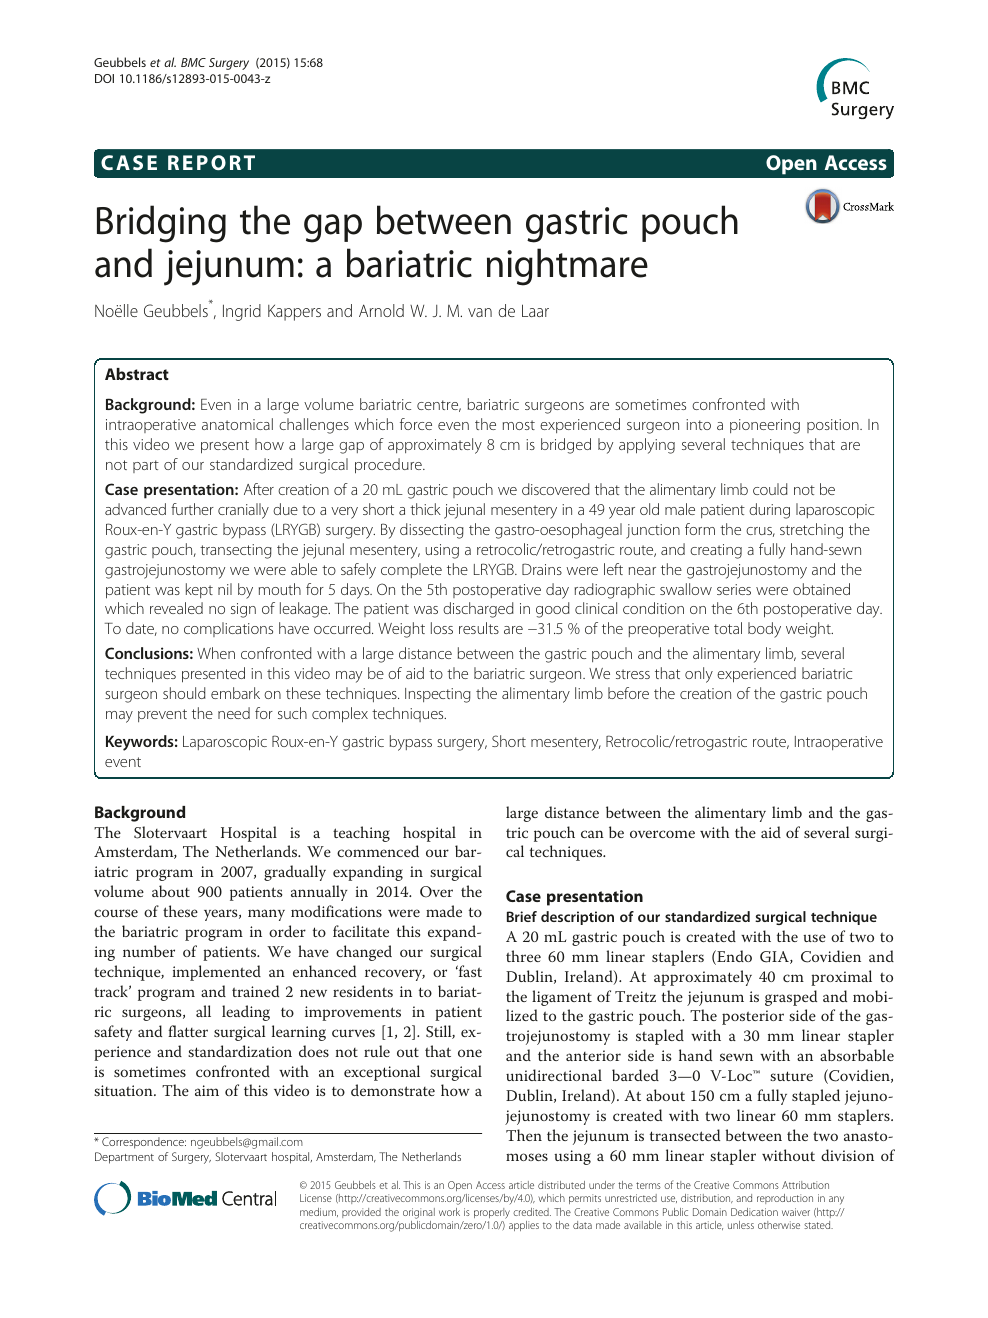 Bridging the gap between gastric pouch and jejunum: a